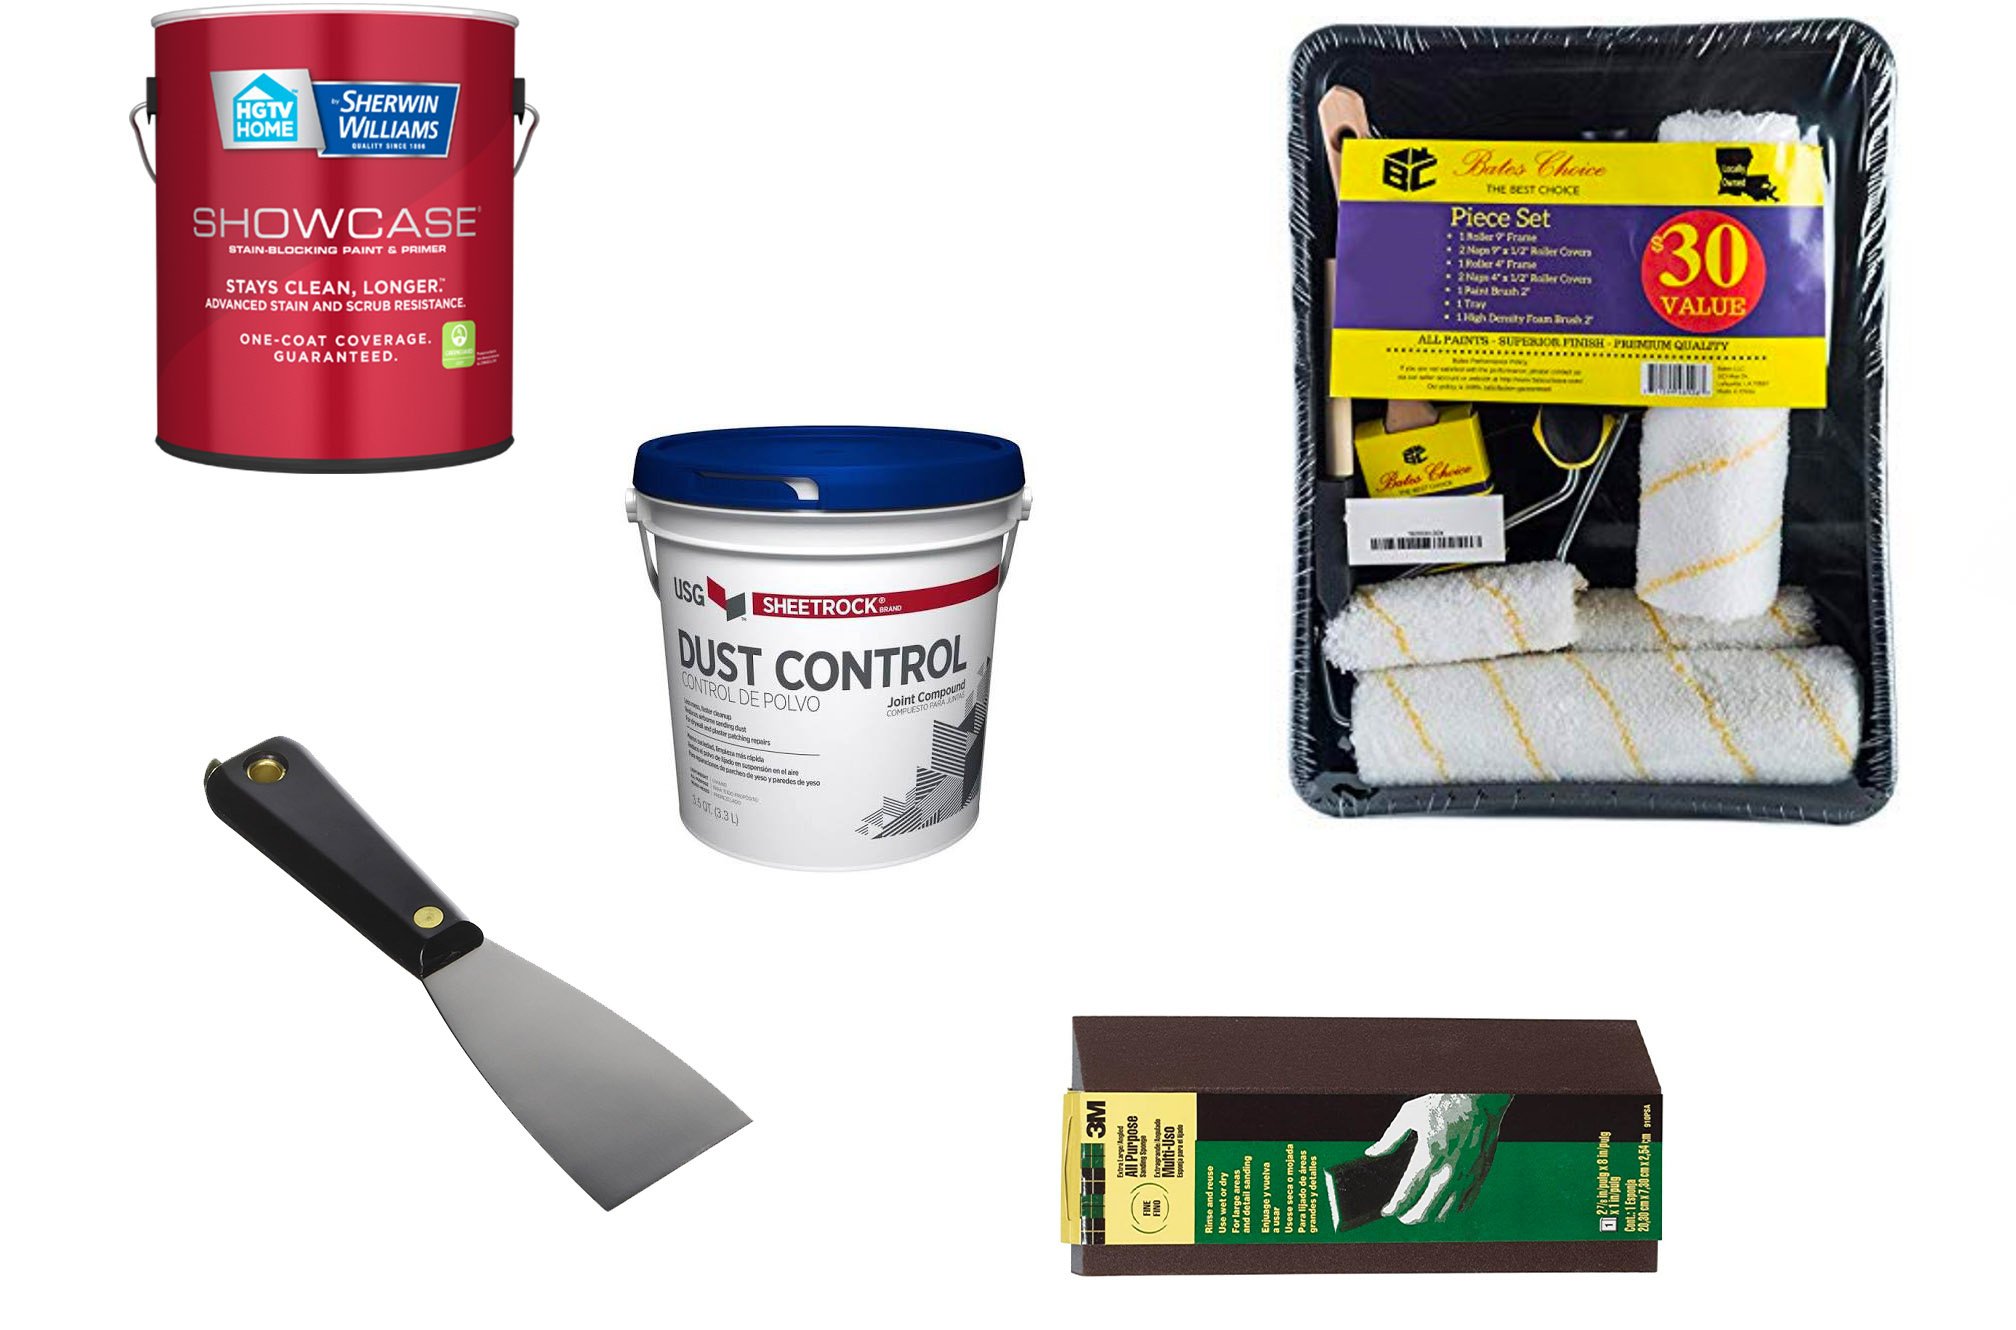 This photo displays materials and tools we use in order to repair our walls after having the furniture on them.